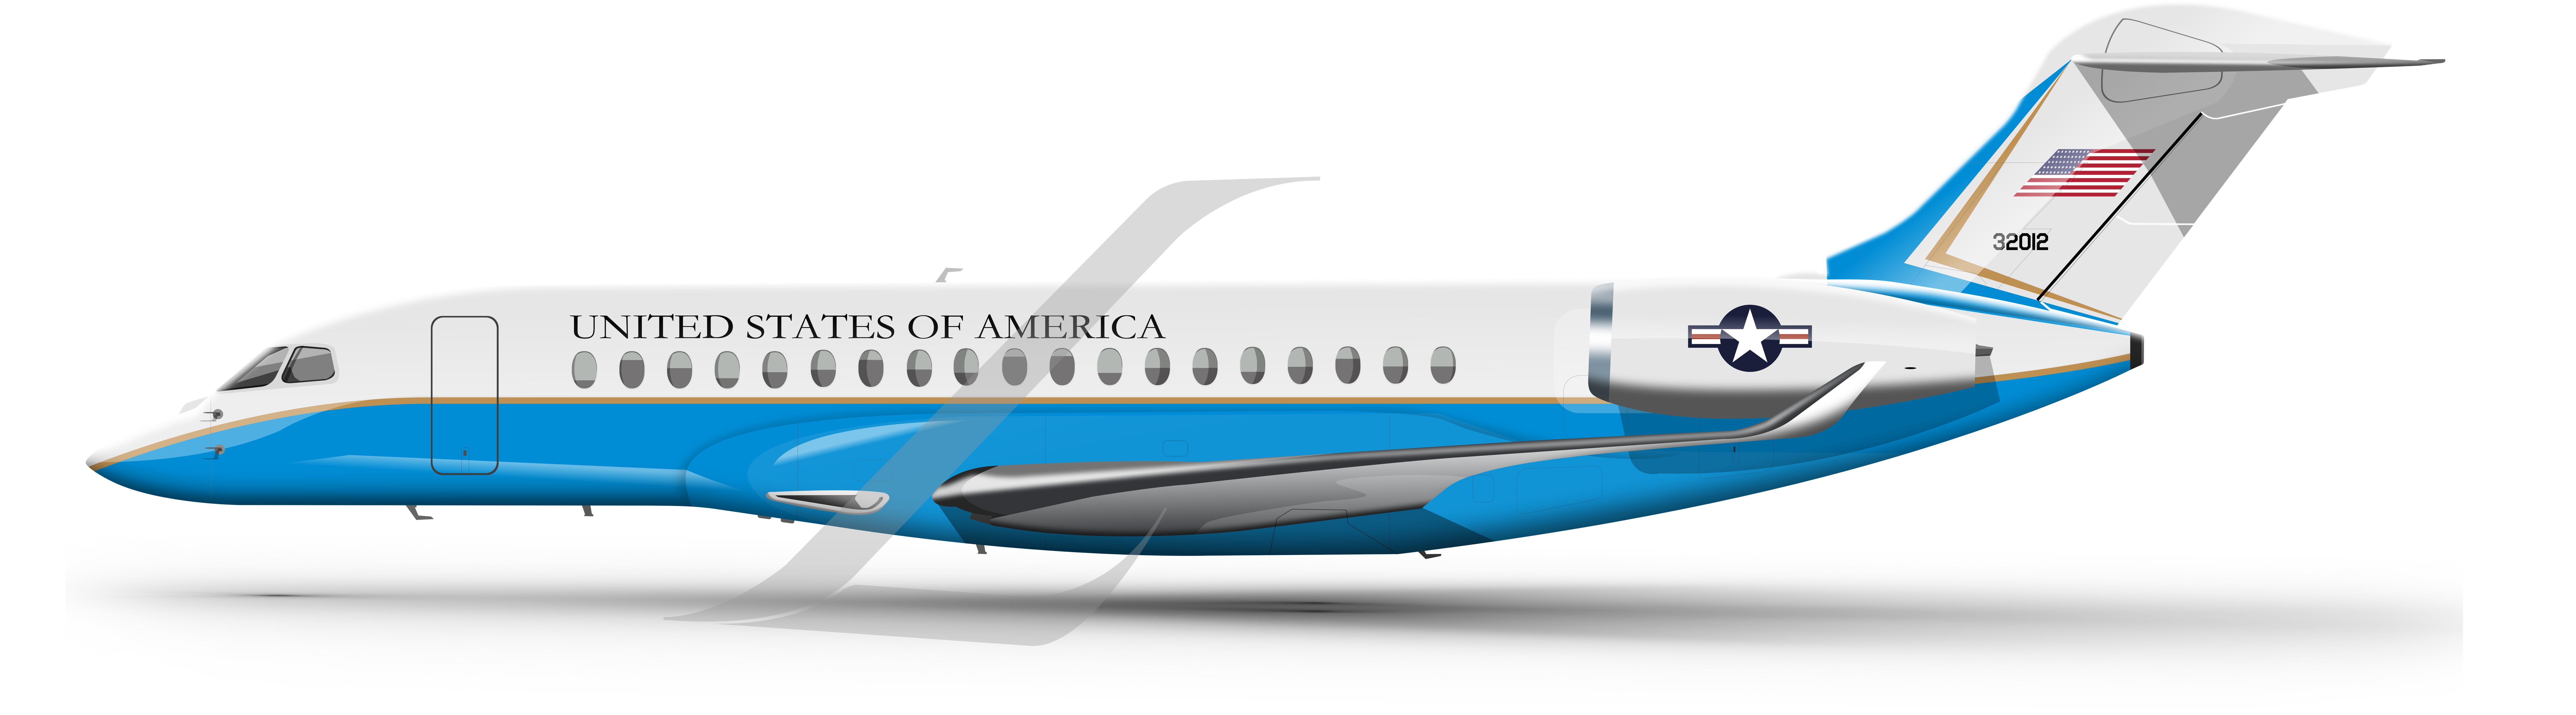 Dassault Falcon 10X US Air Force livery